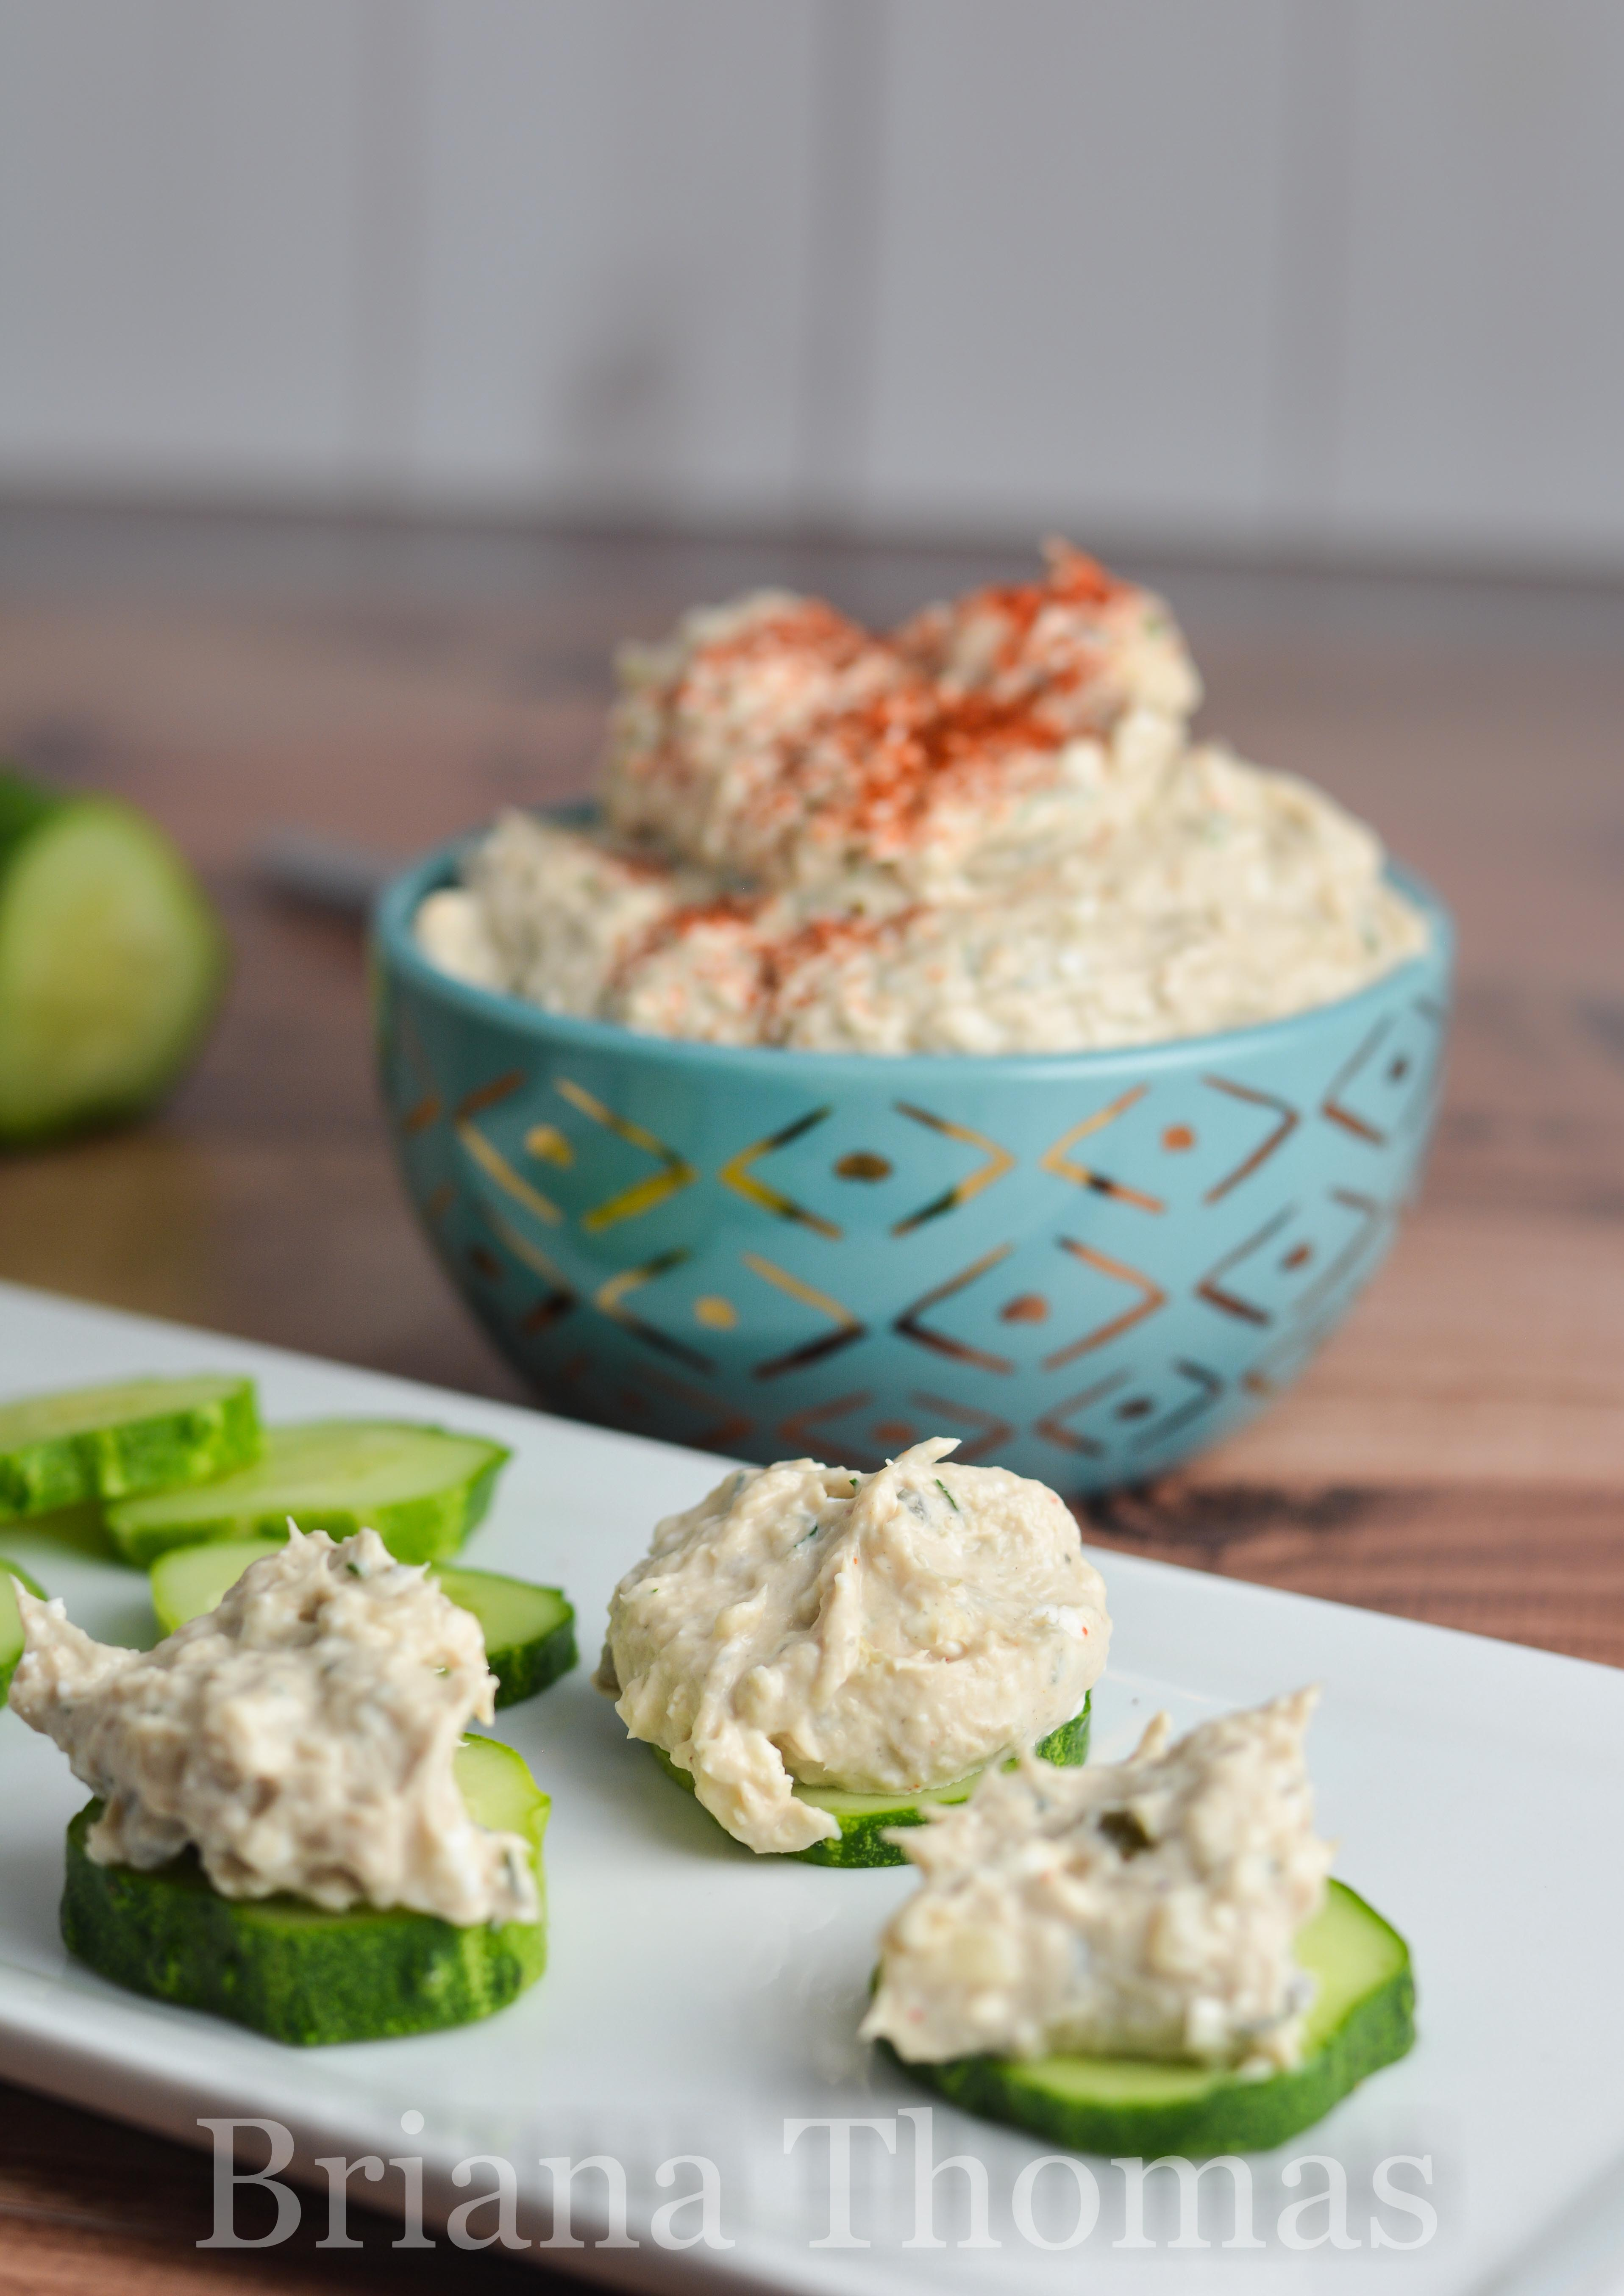 This yummy salmon dip salad can be - you guessed it - a dip or a salad! THM:FP (or S in large amounts), low carb, low fat, gluten/egg nut free